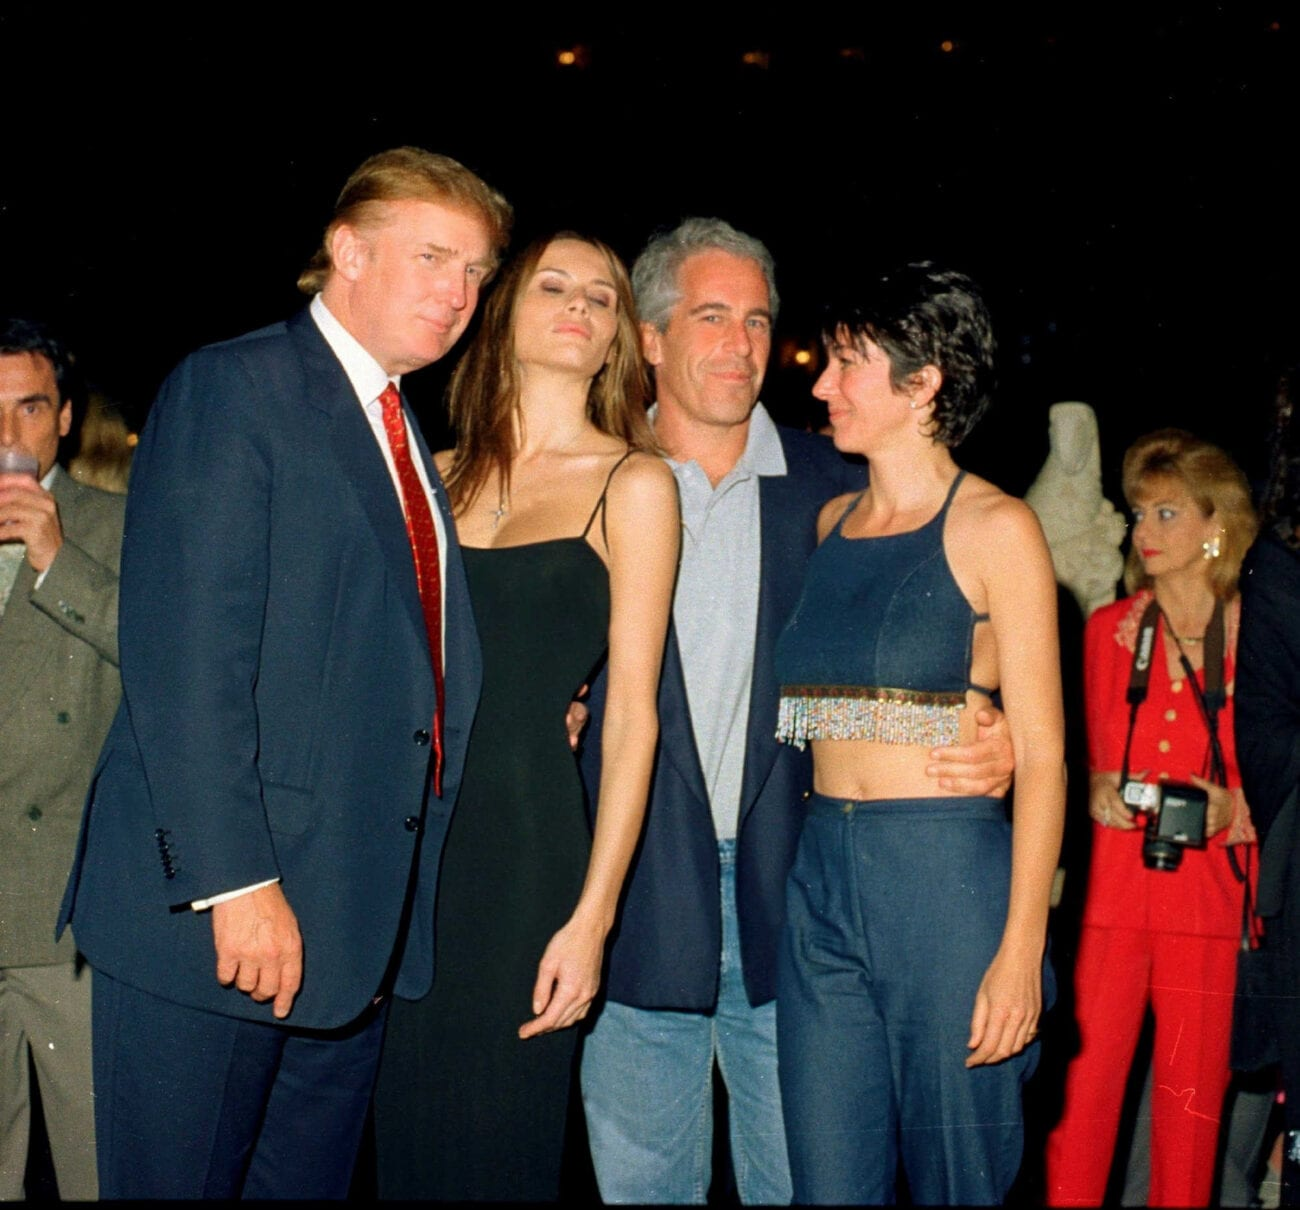 'Jeffrey Epstein: Filthy Rich' to Premiere on Netflix on May 27th